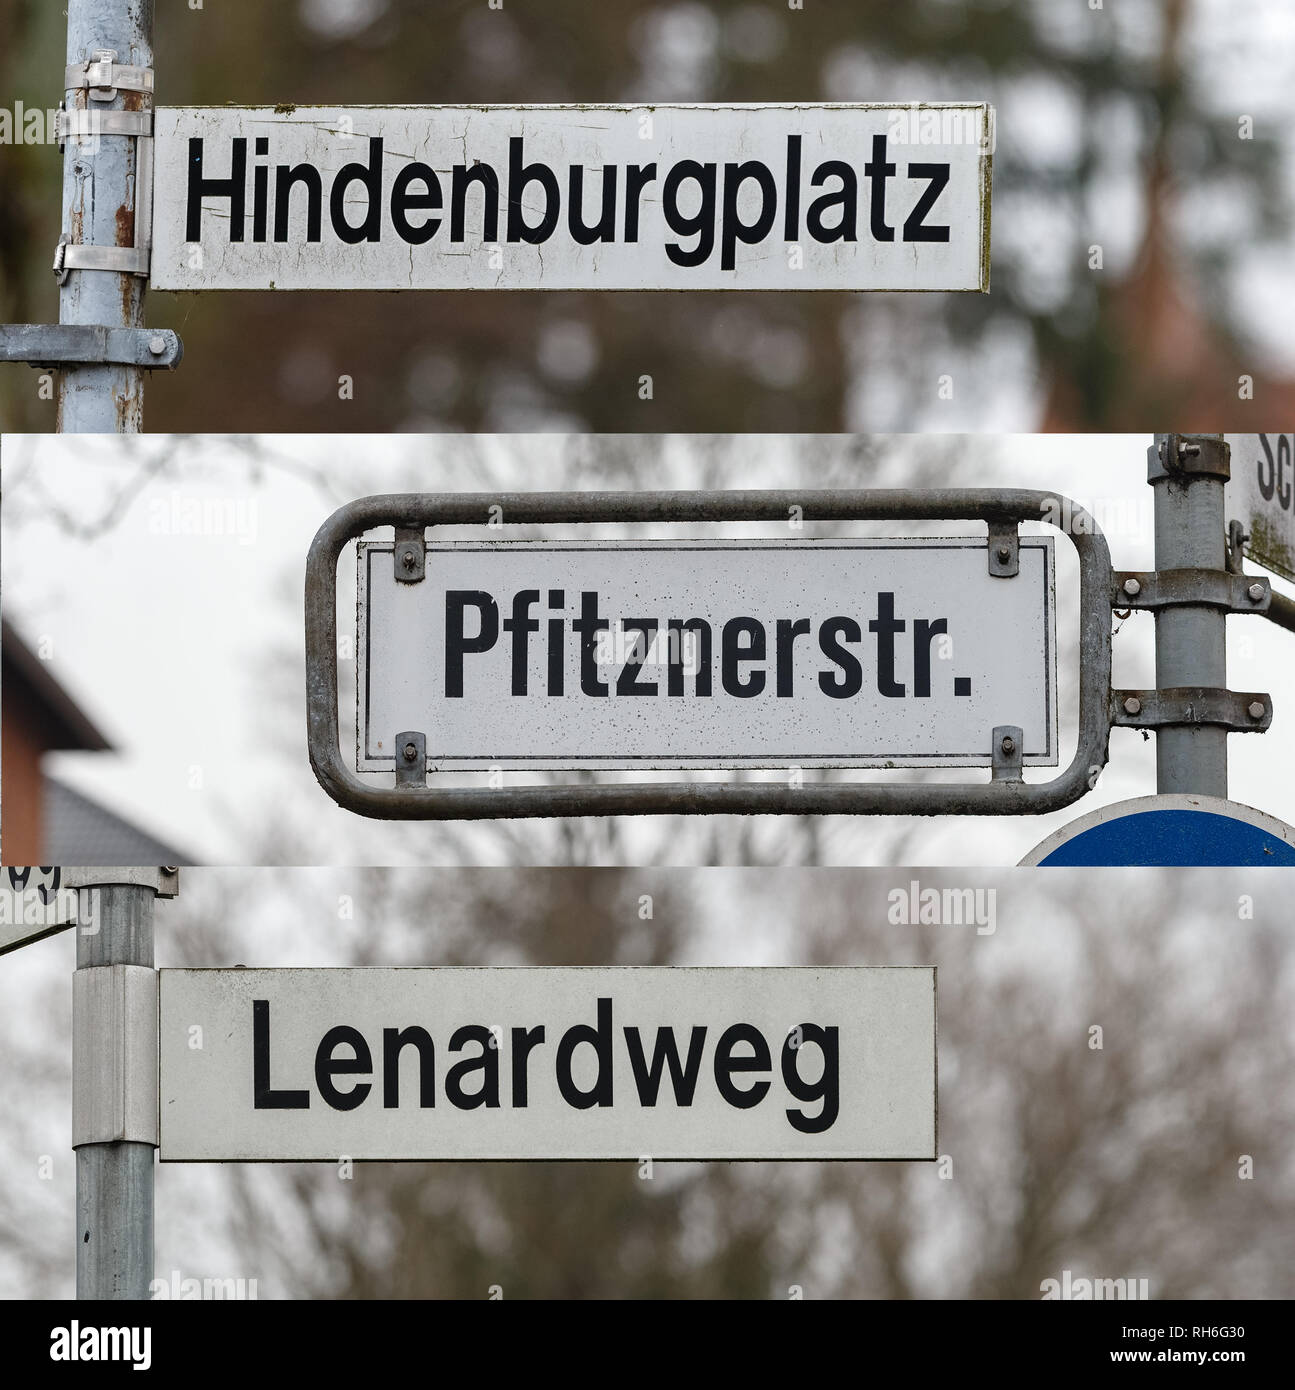 """01 February 2019, Schleswig-Holstein, Lübeck: ILLUSTRATION - The combo of three photos shows street signs with the names """"Hindenburgplatz, Lenardweg and Pfitznerstraße"""". The citizenship of Lübeck has decided to rename the streets after historically polluted persons. Photo: Markus Scholz/dpa Stock Photo"""